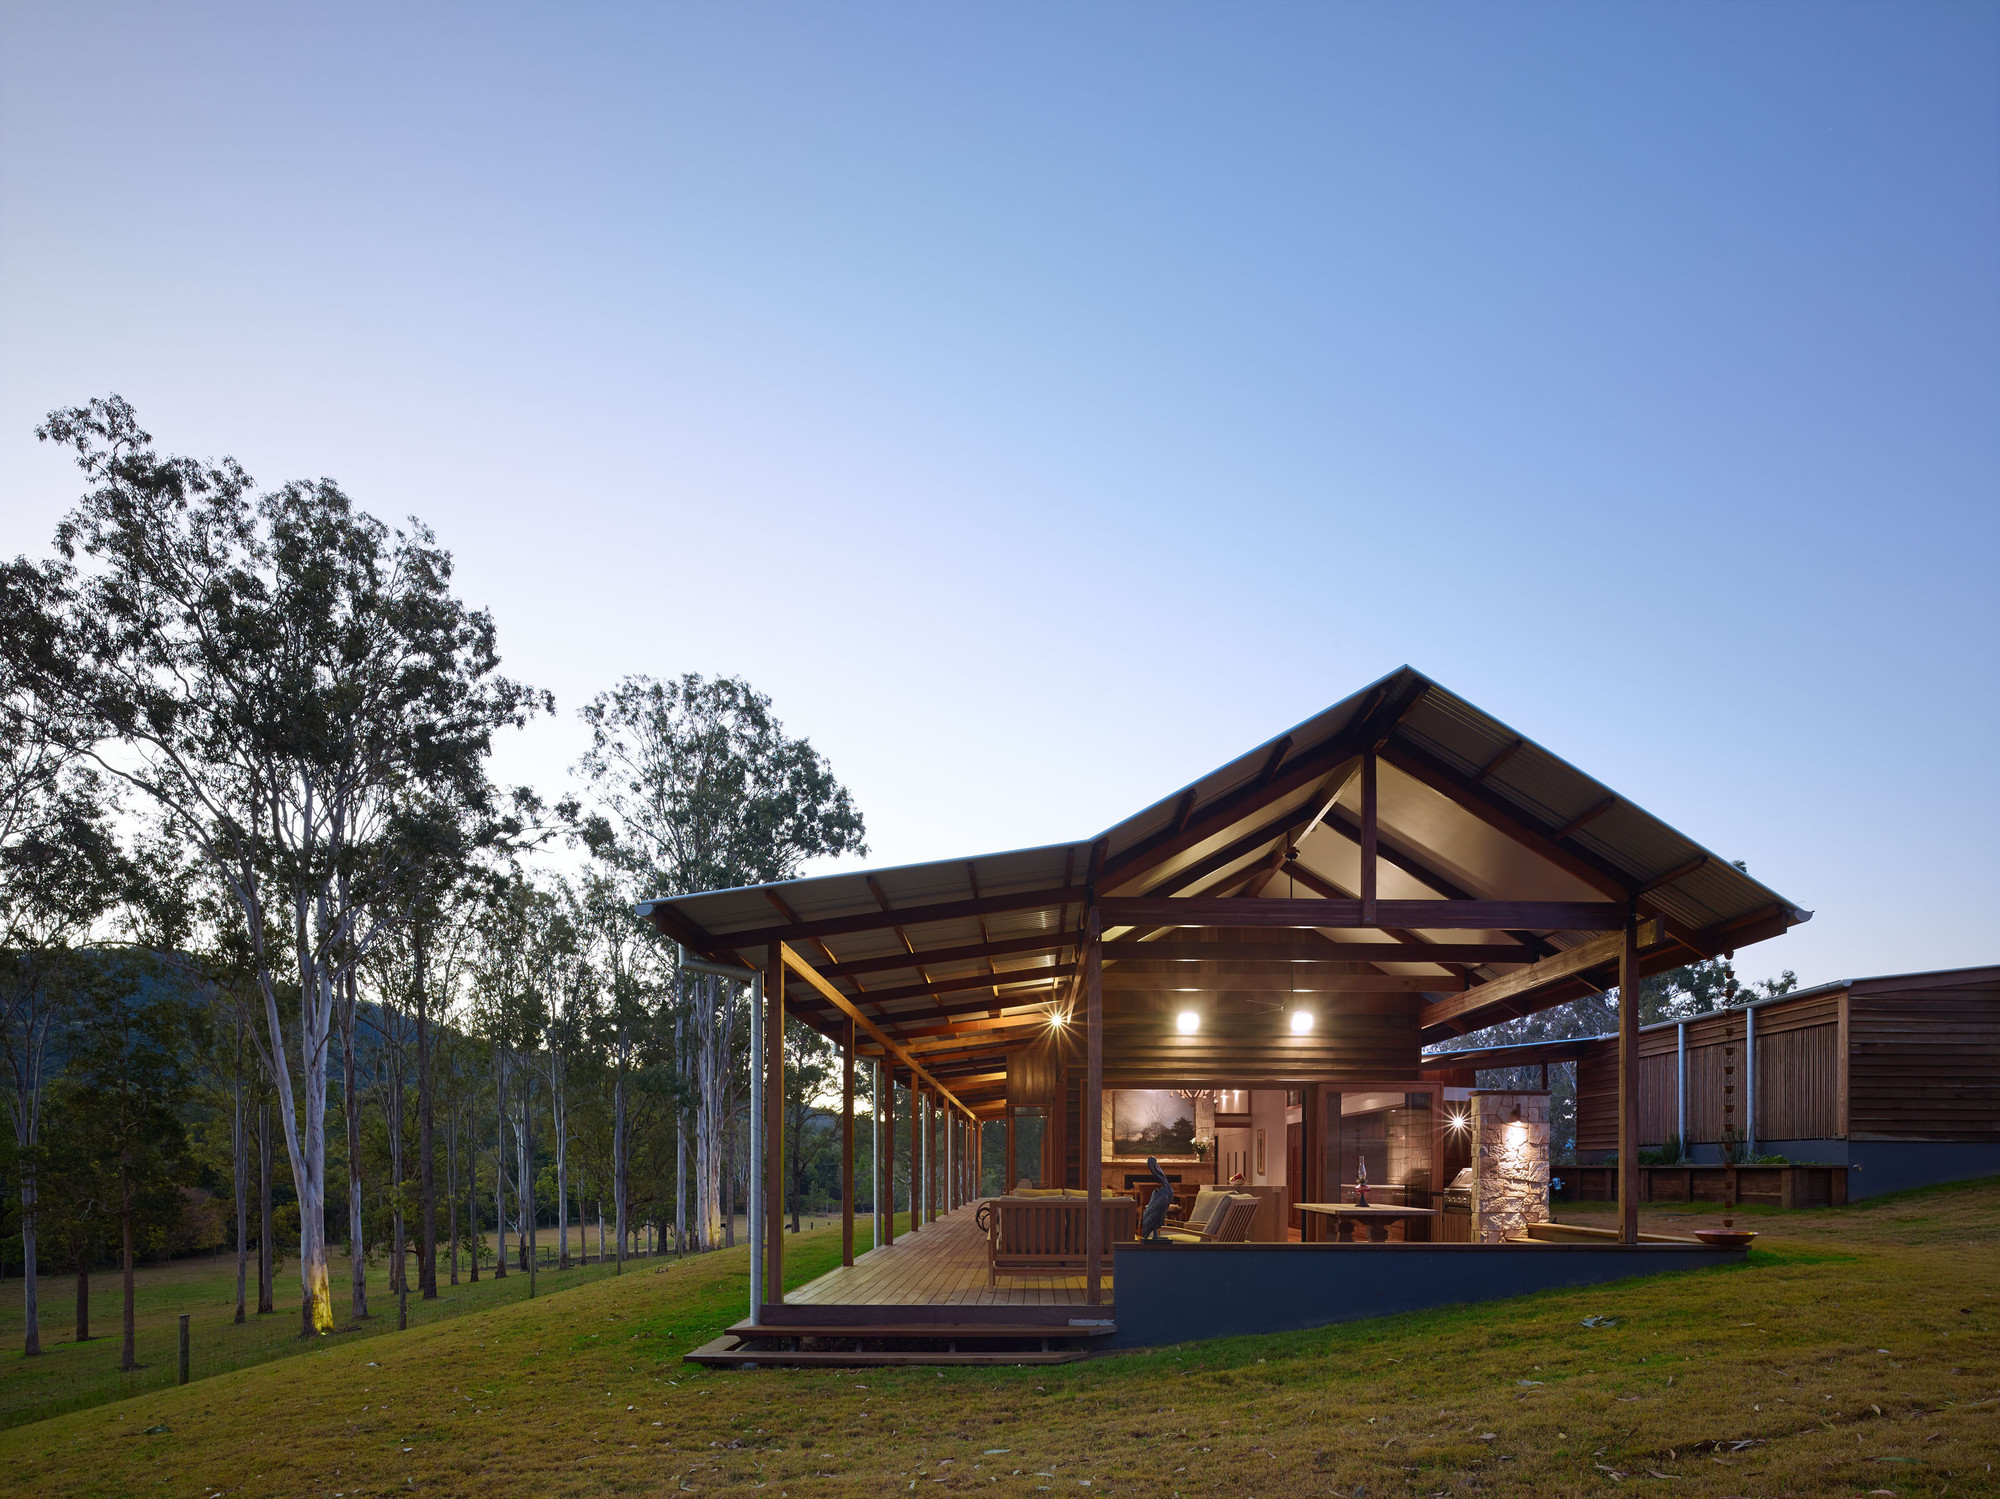 Hinterland house captures the spirit of rural australian style for Australian architecture